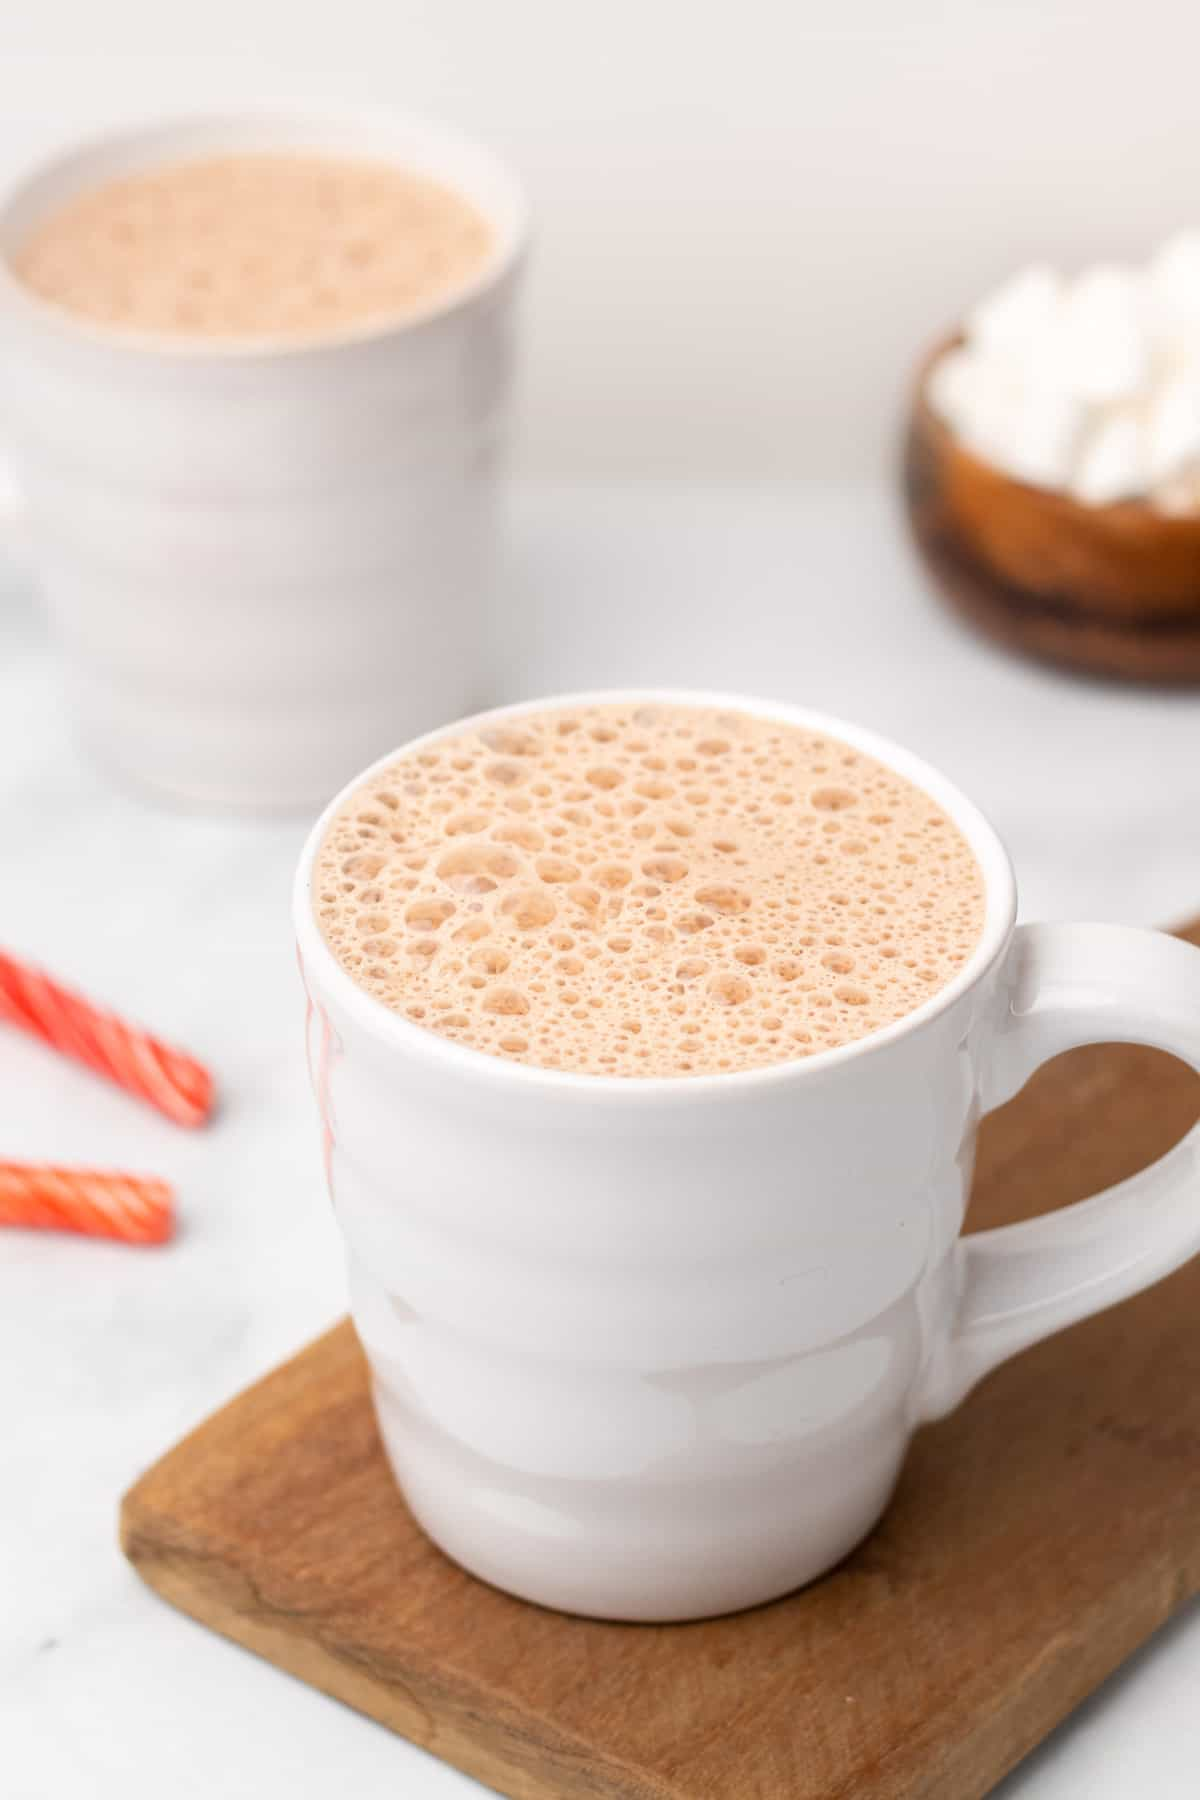 Peppermint mocha latte in a white coffee mug